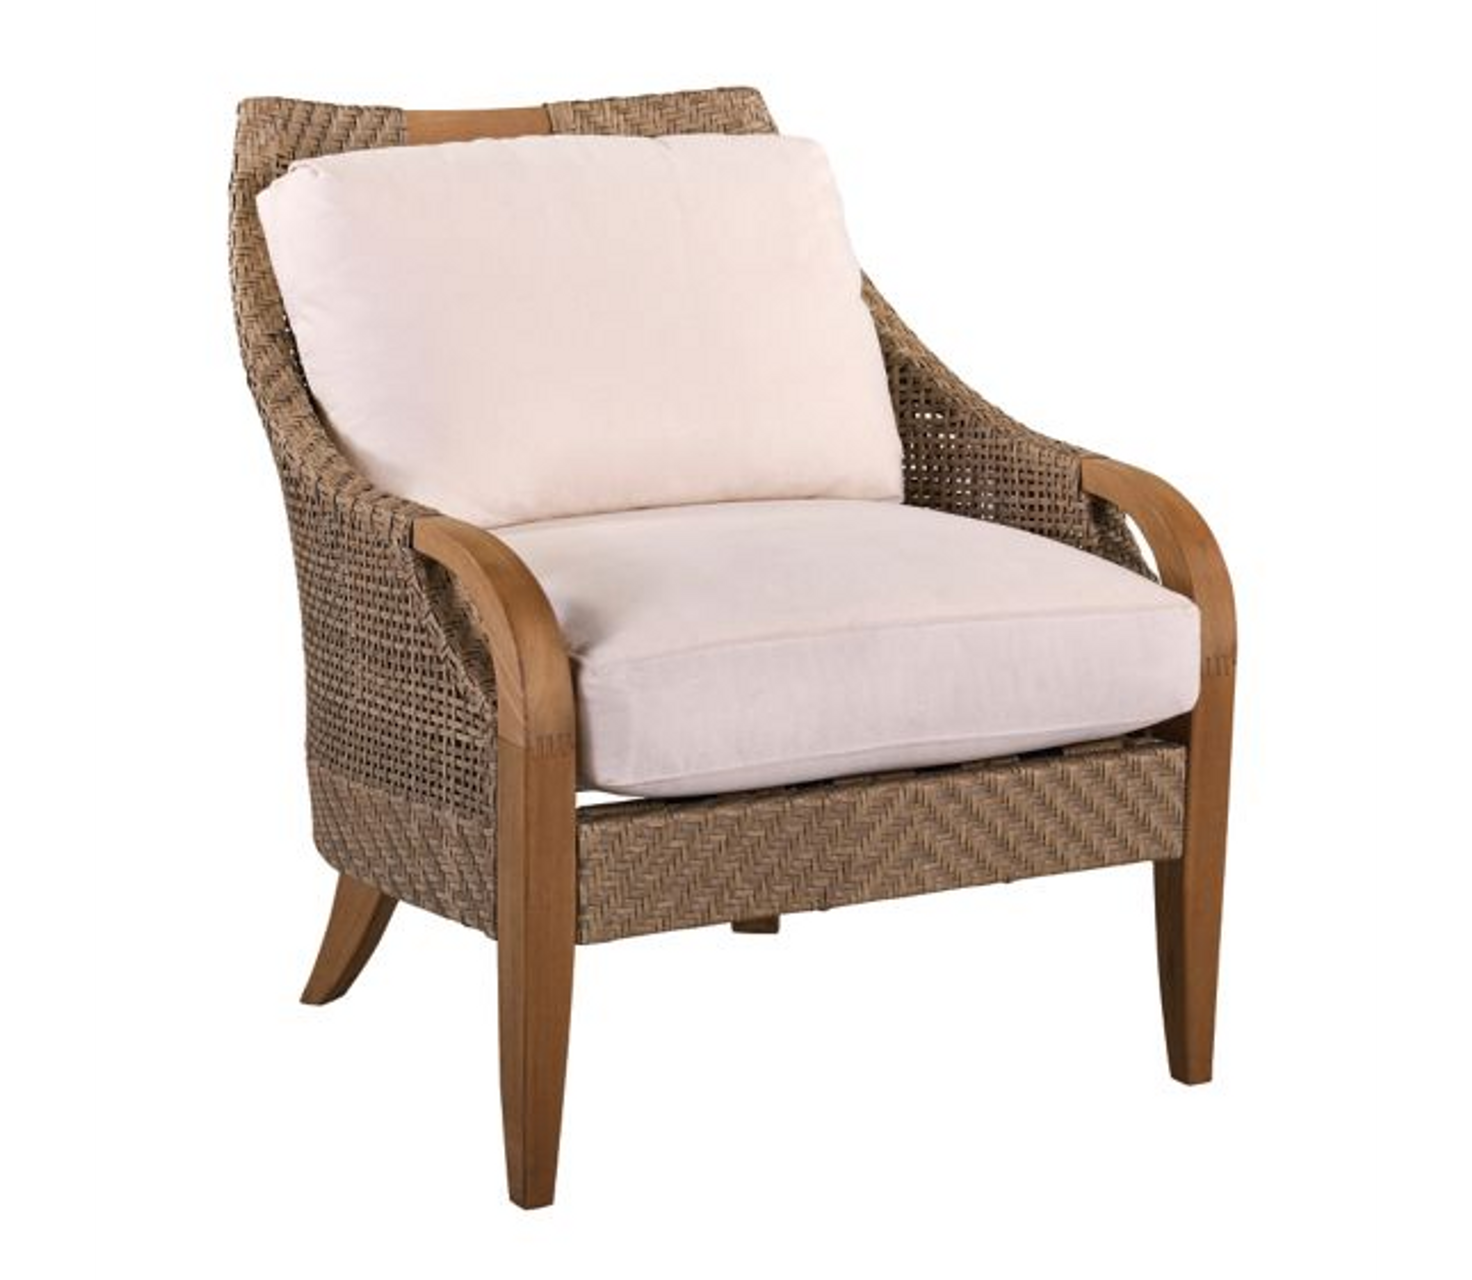 Chaise Lounge Rattan Sintetico.Lane Venture Edgewood Outdoor Teak And Synthetic Wicker Lounge Chair